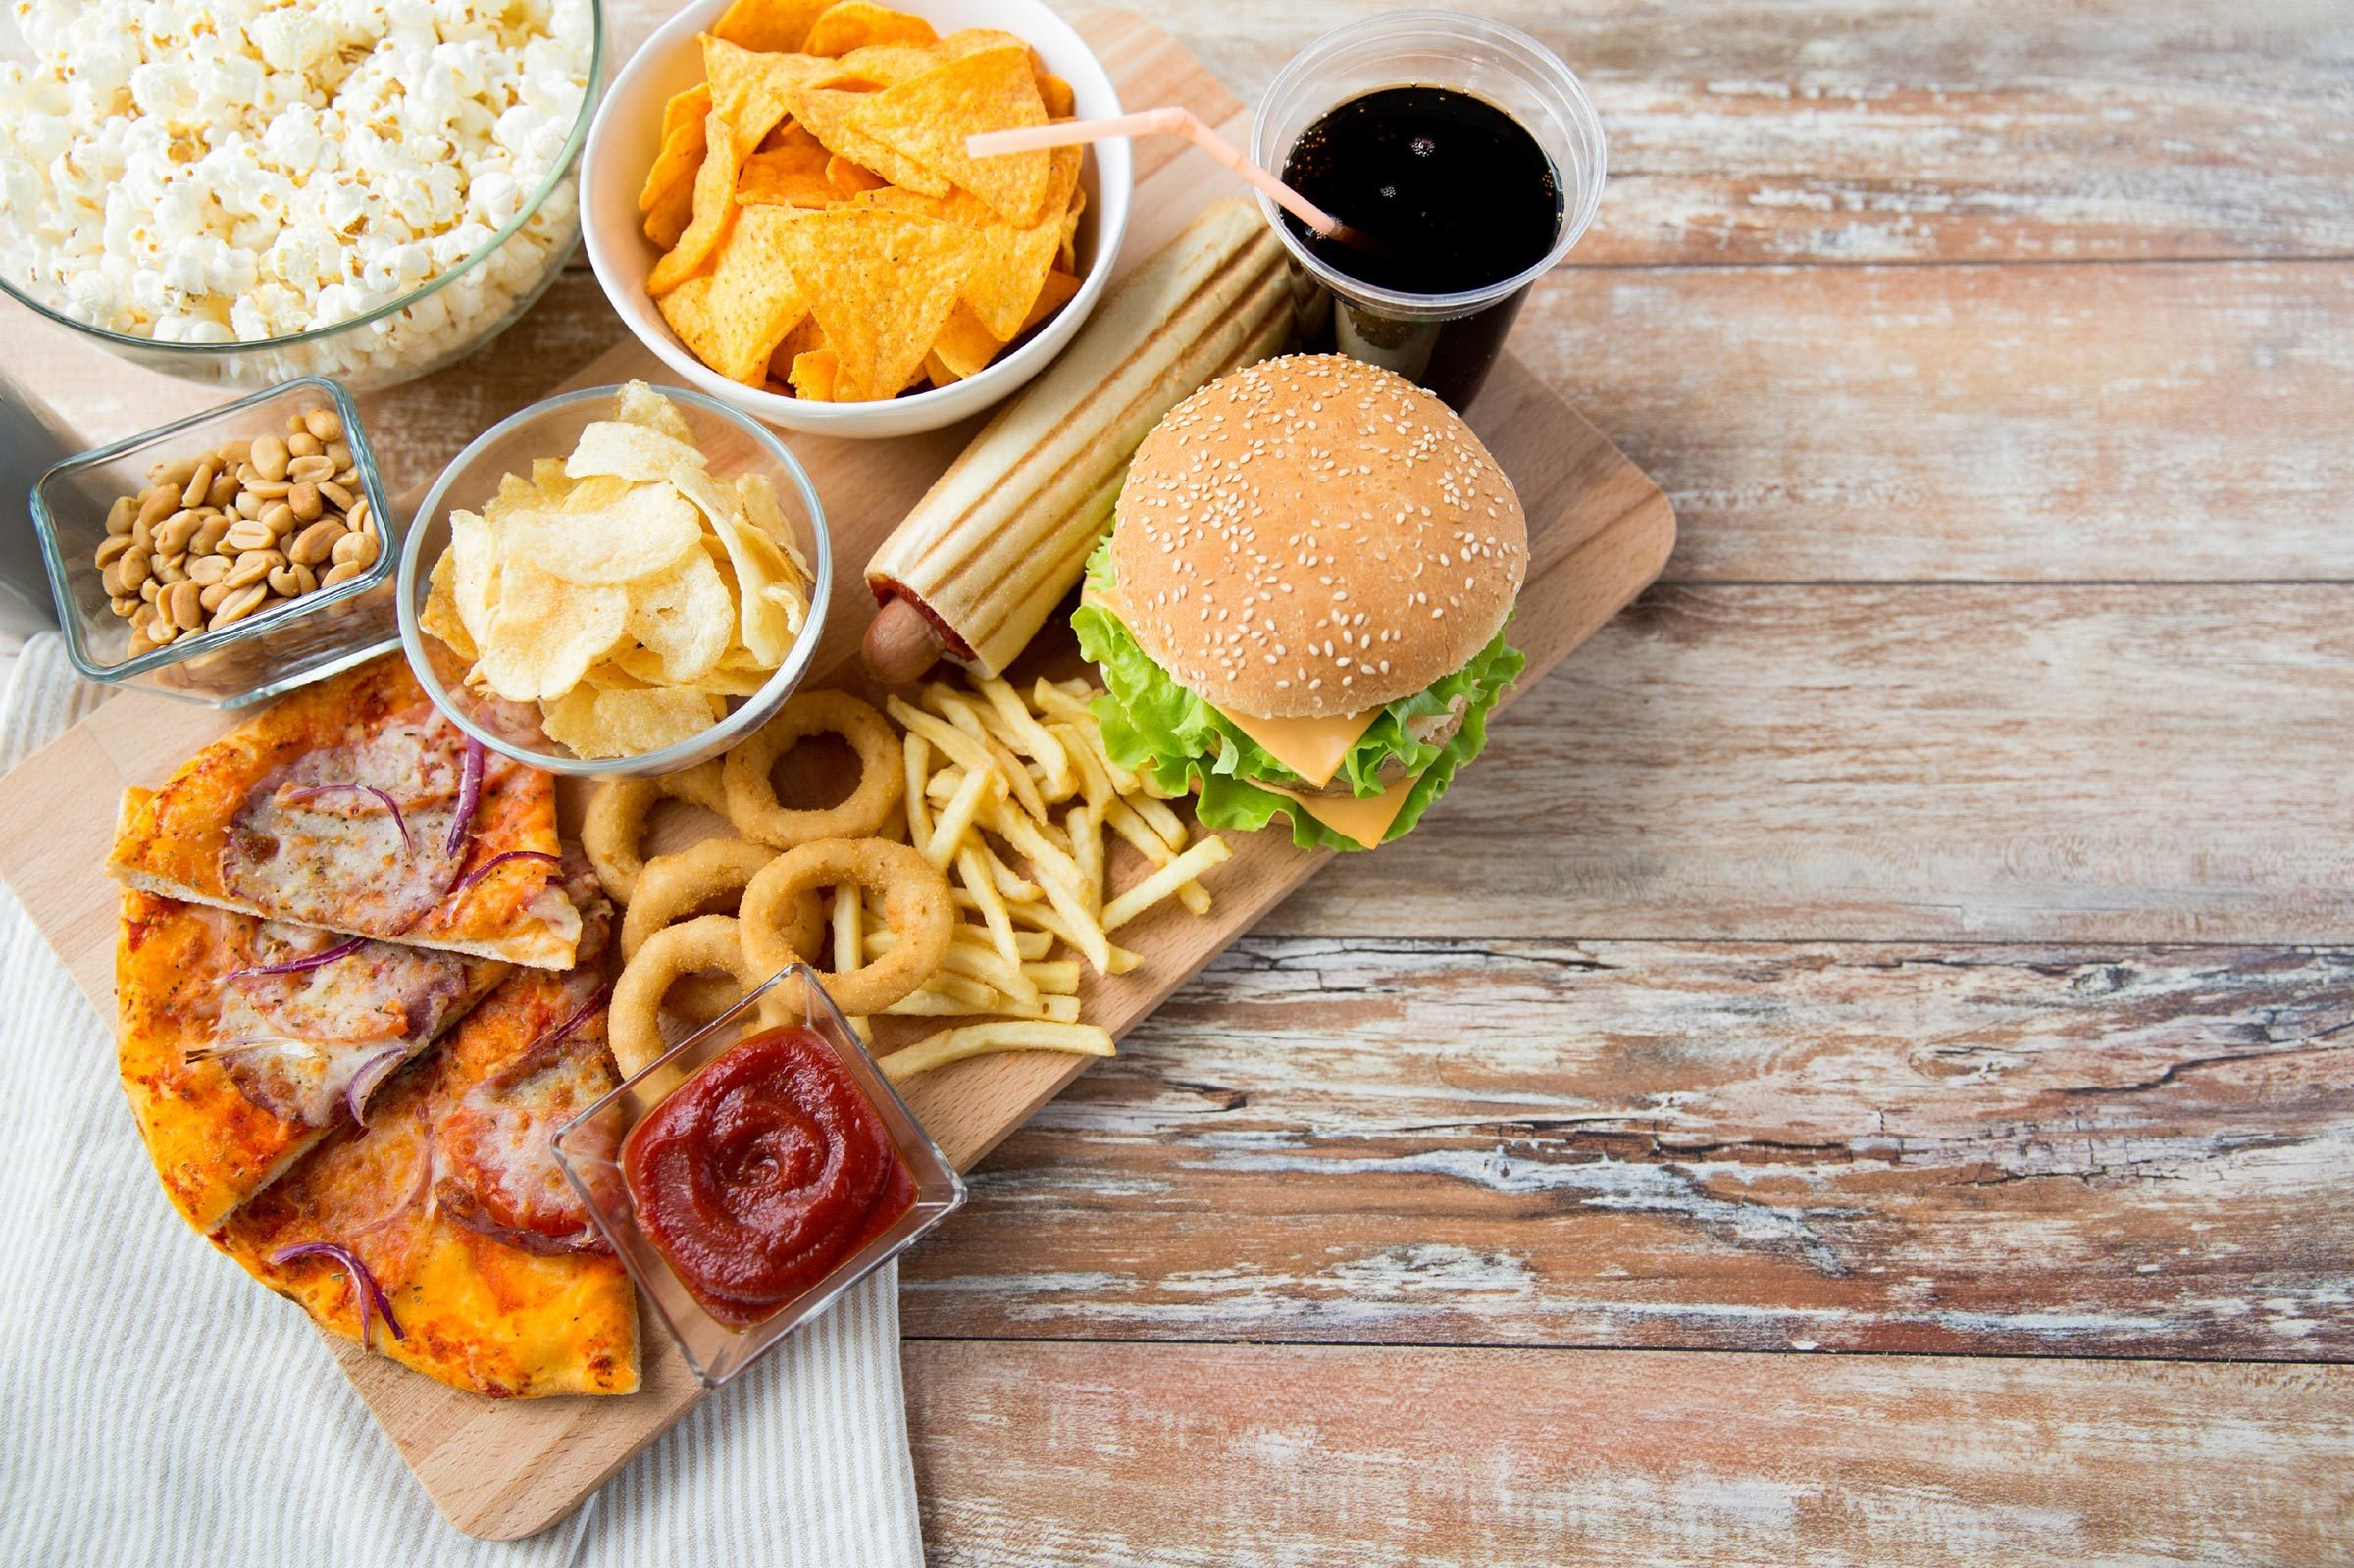 8 Ways to Train Your Brain to Hate Junk Food | Reader's Digest